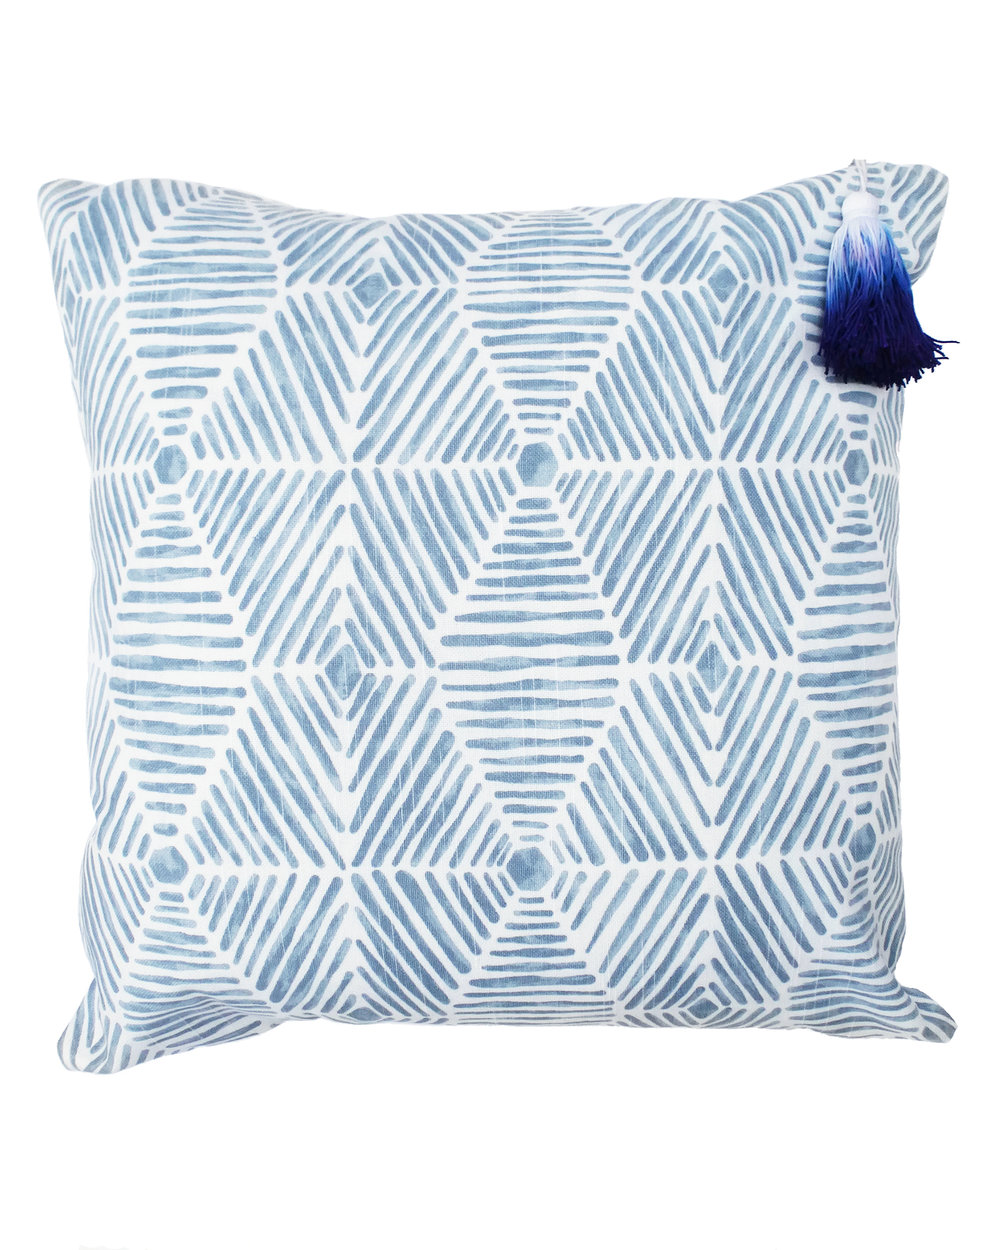 RIVIERA PILLOW